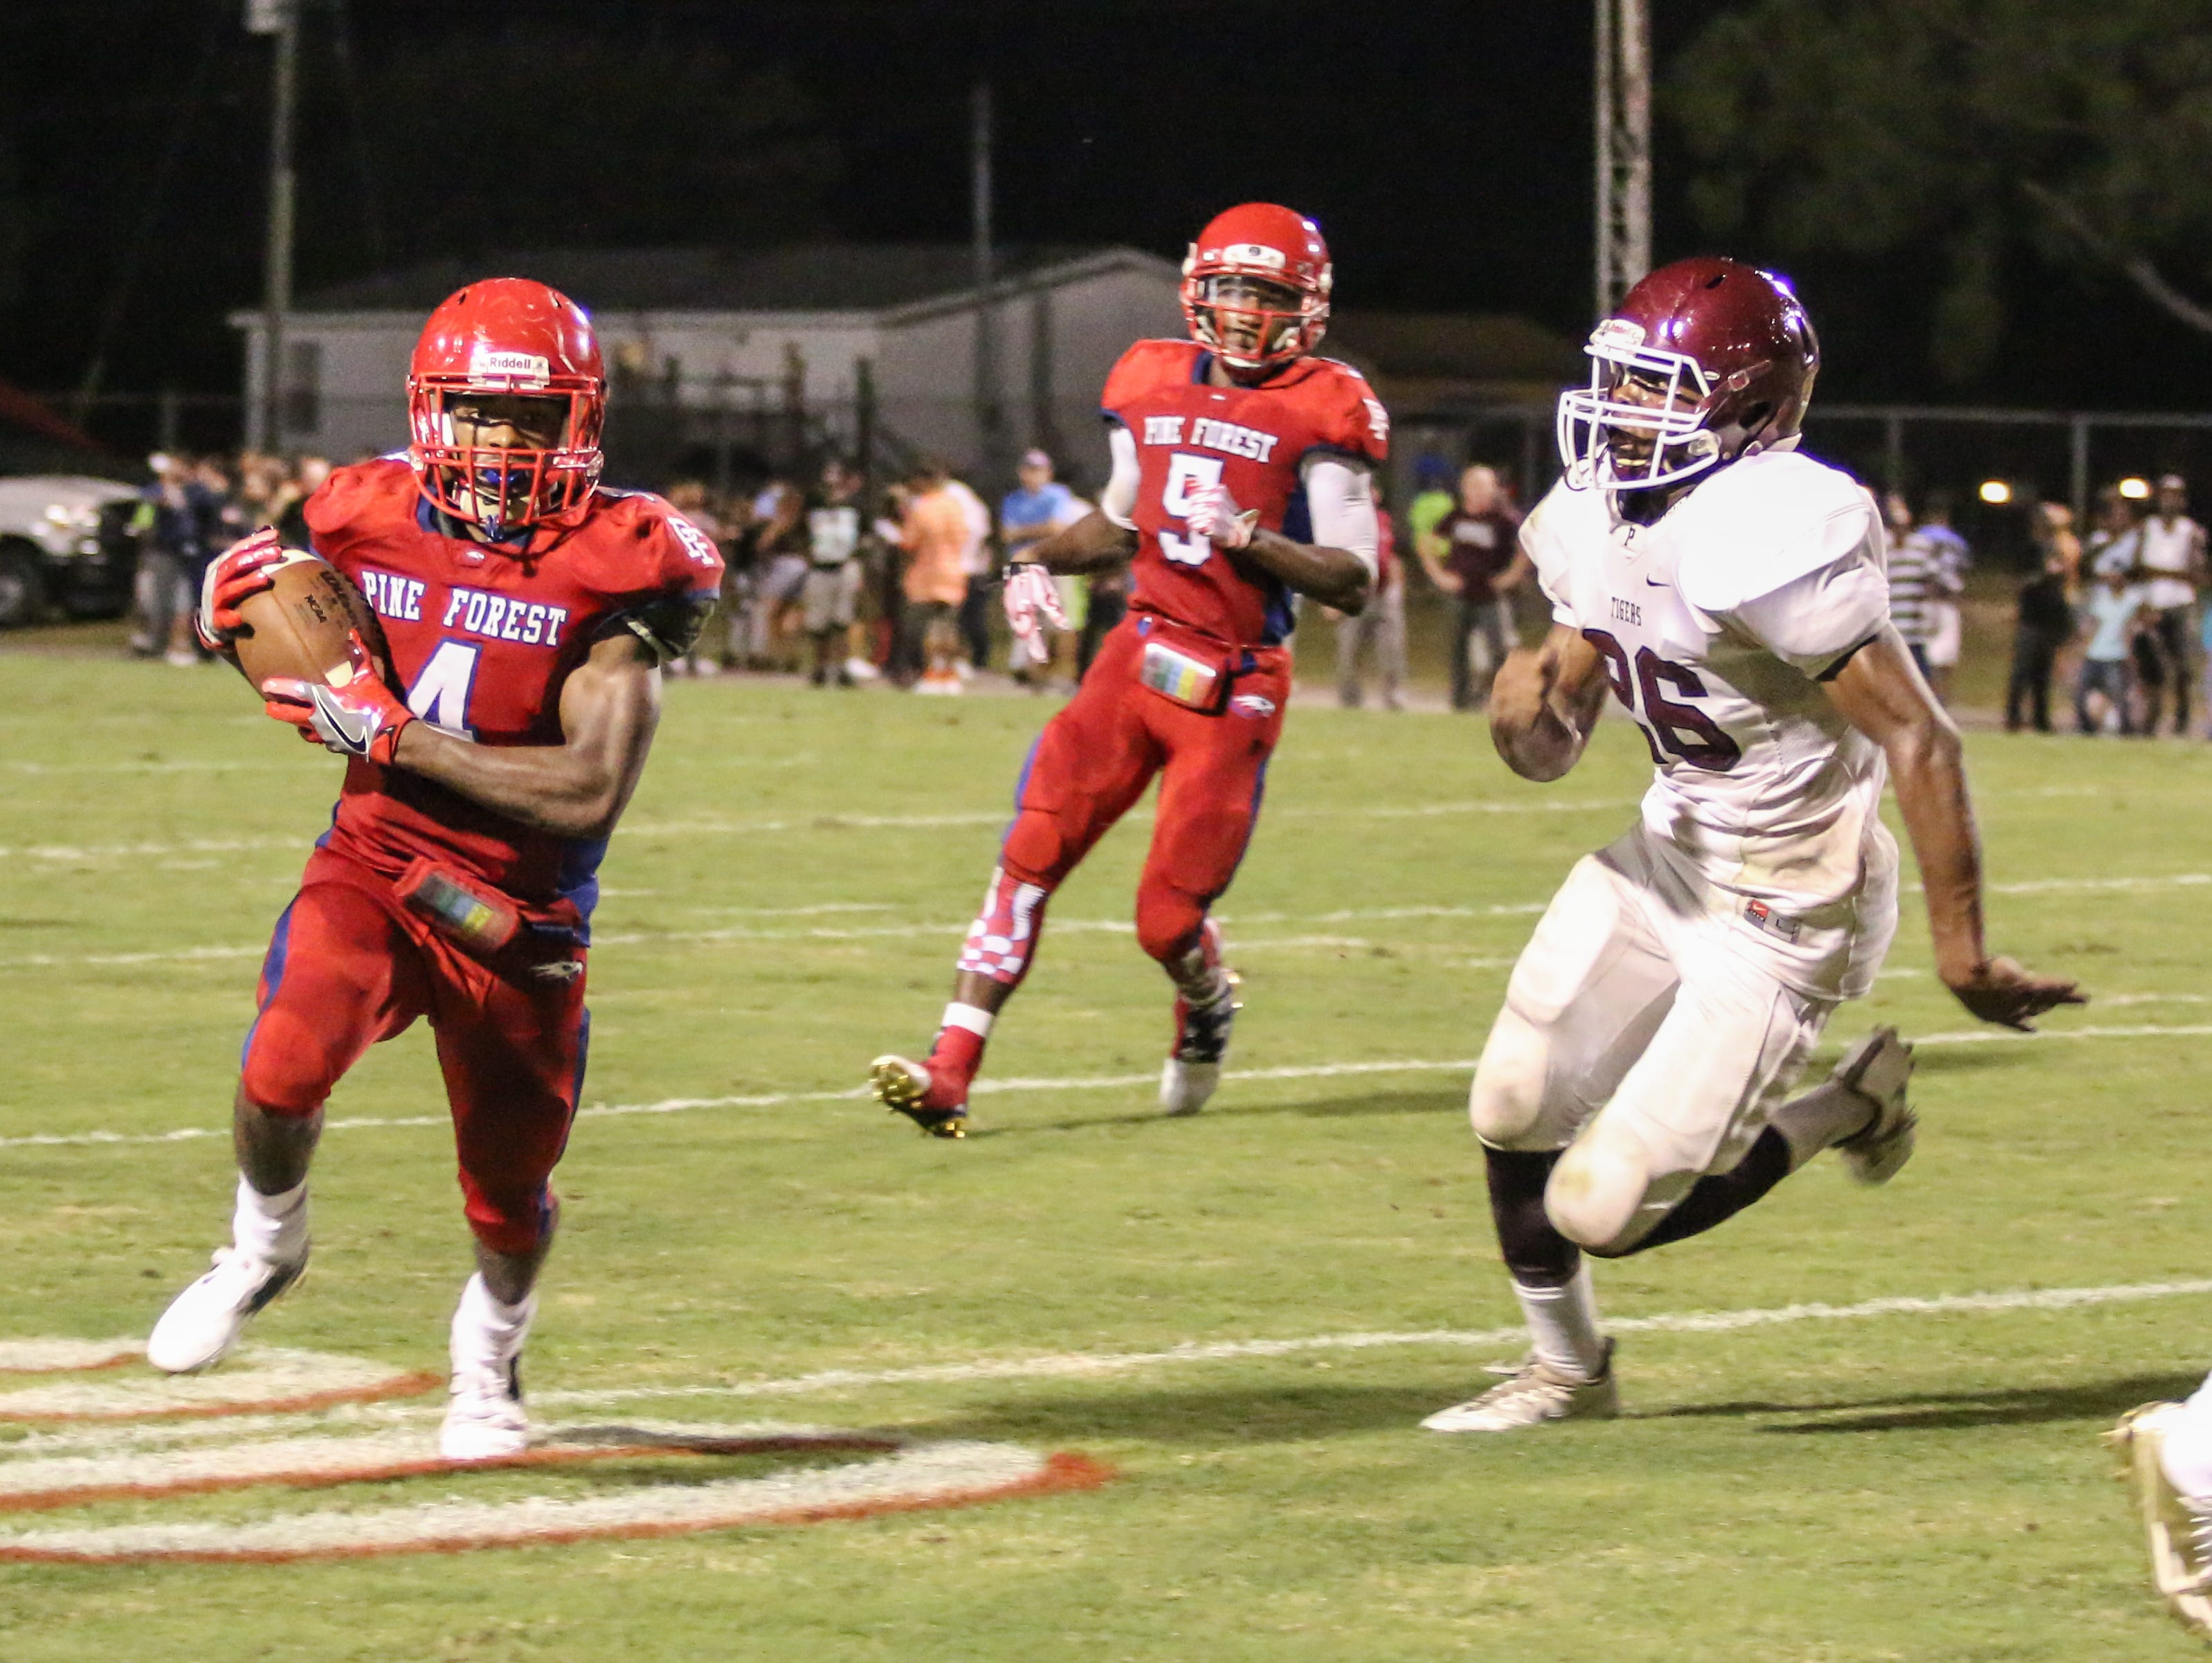 Pine Forest's Ladarius Wiggins (4) races outside past Pensacola's Devin Gadson (26) Friday night at Pine Forest High School.